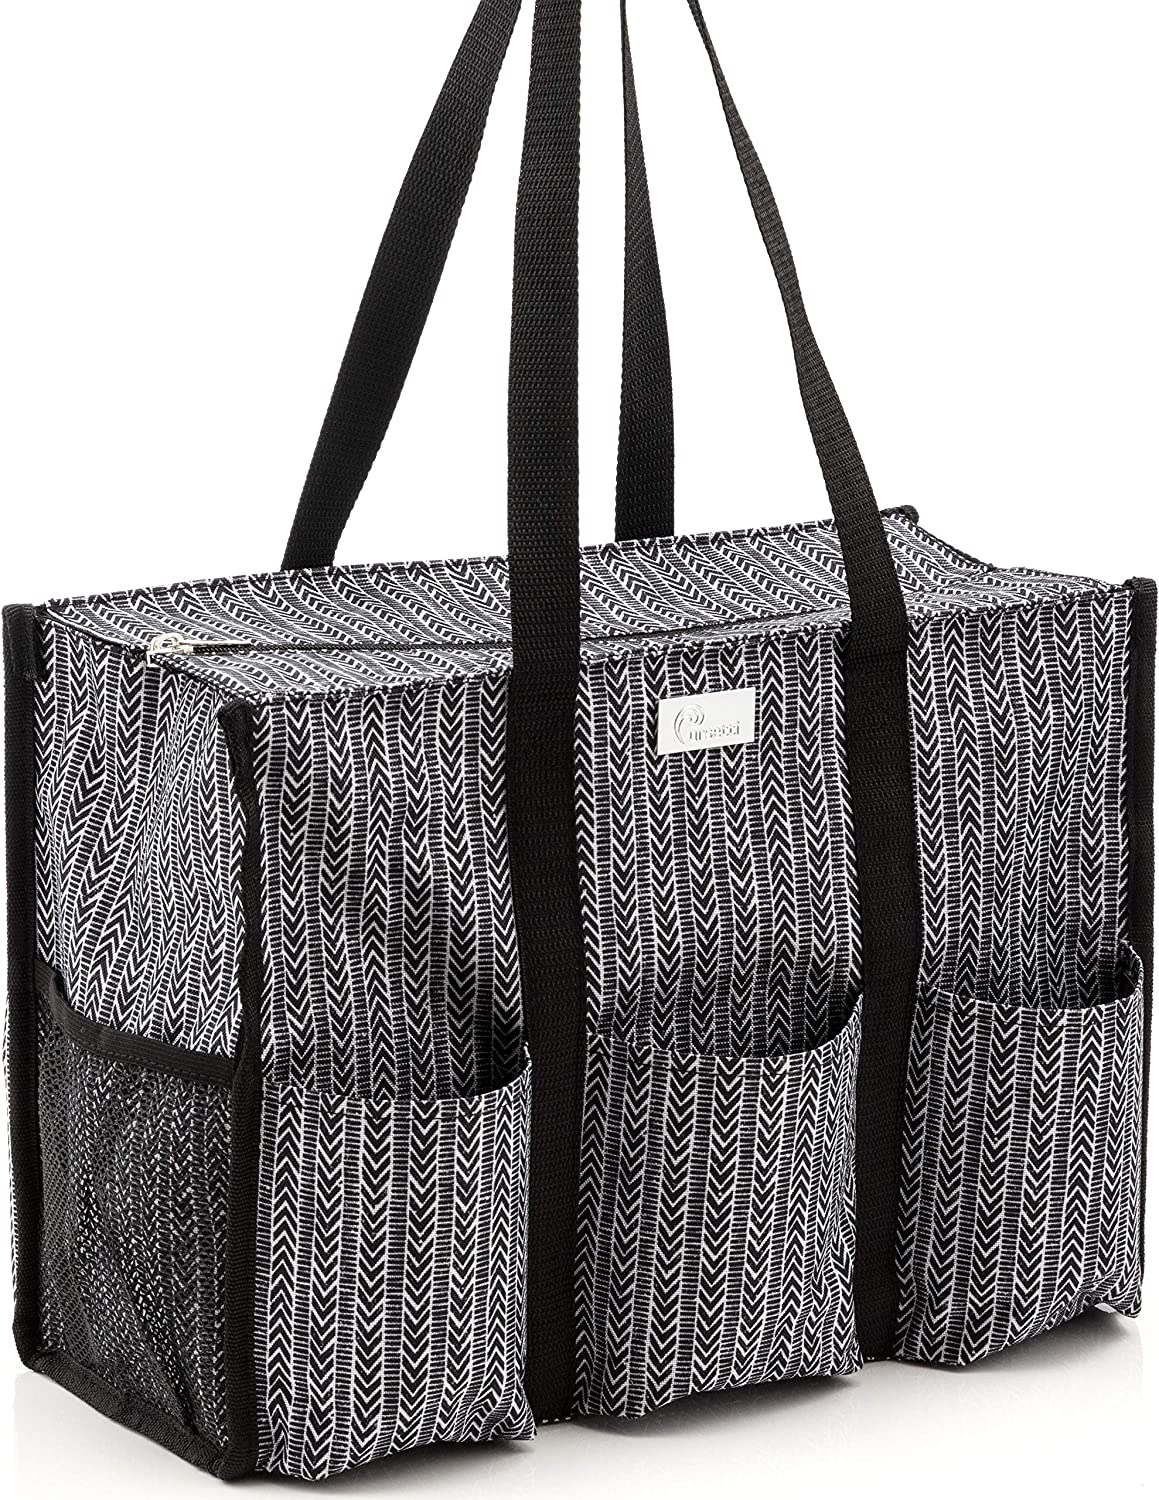 Pursetti Zip-Top Organizing Utility Tote Bag with Multiple Exterior & Interior Pockets for Working Women, Nurses, Teachers and Soccer Moms (Herringbone)